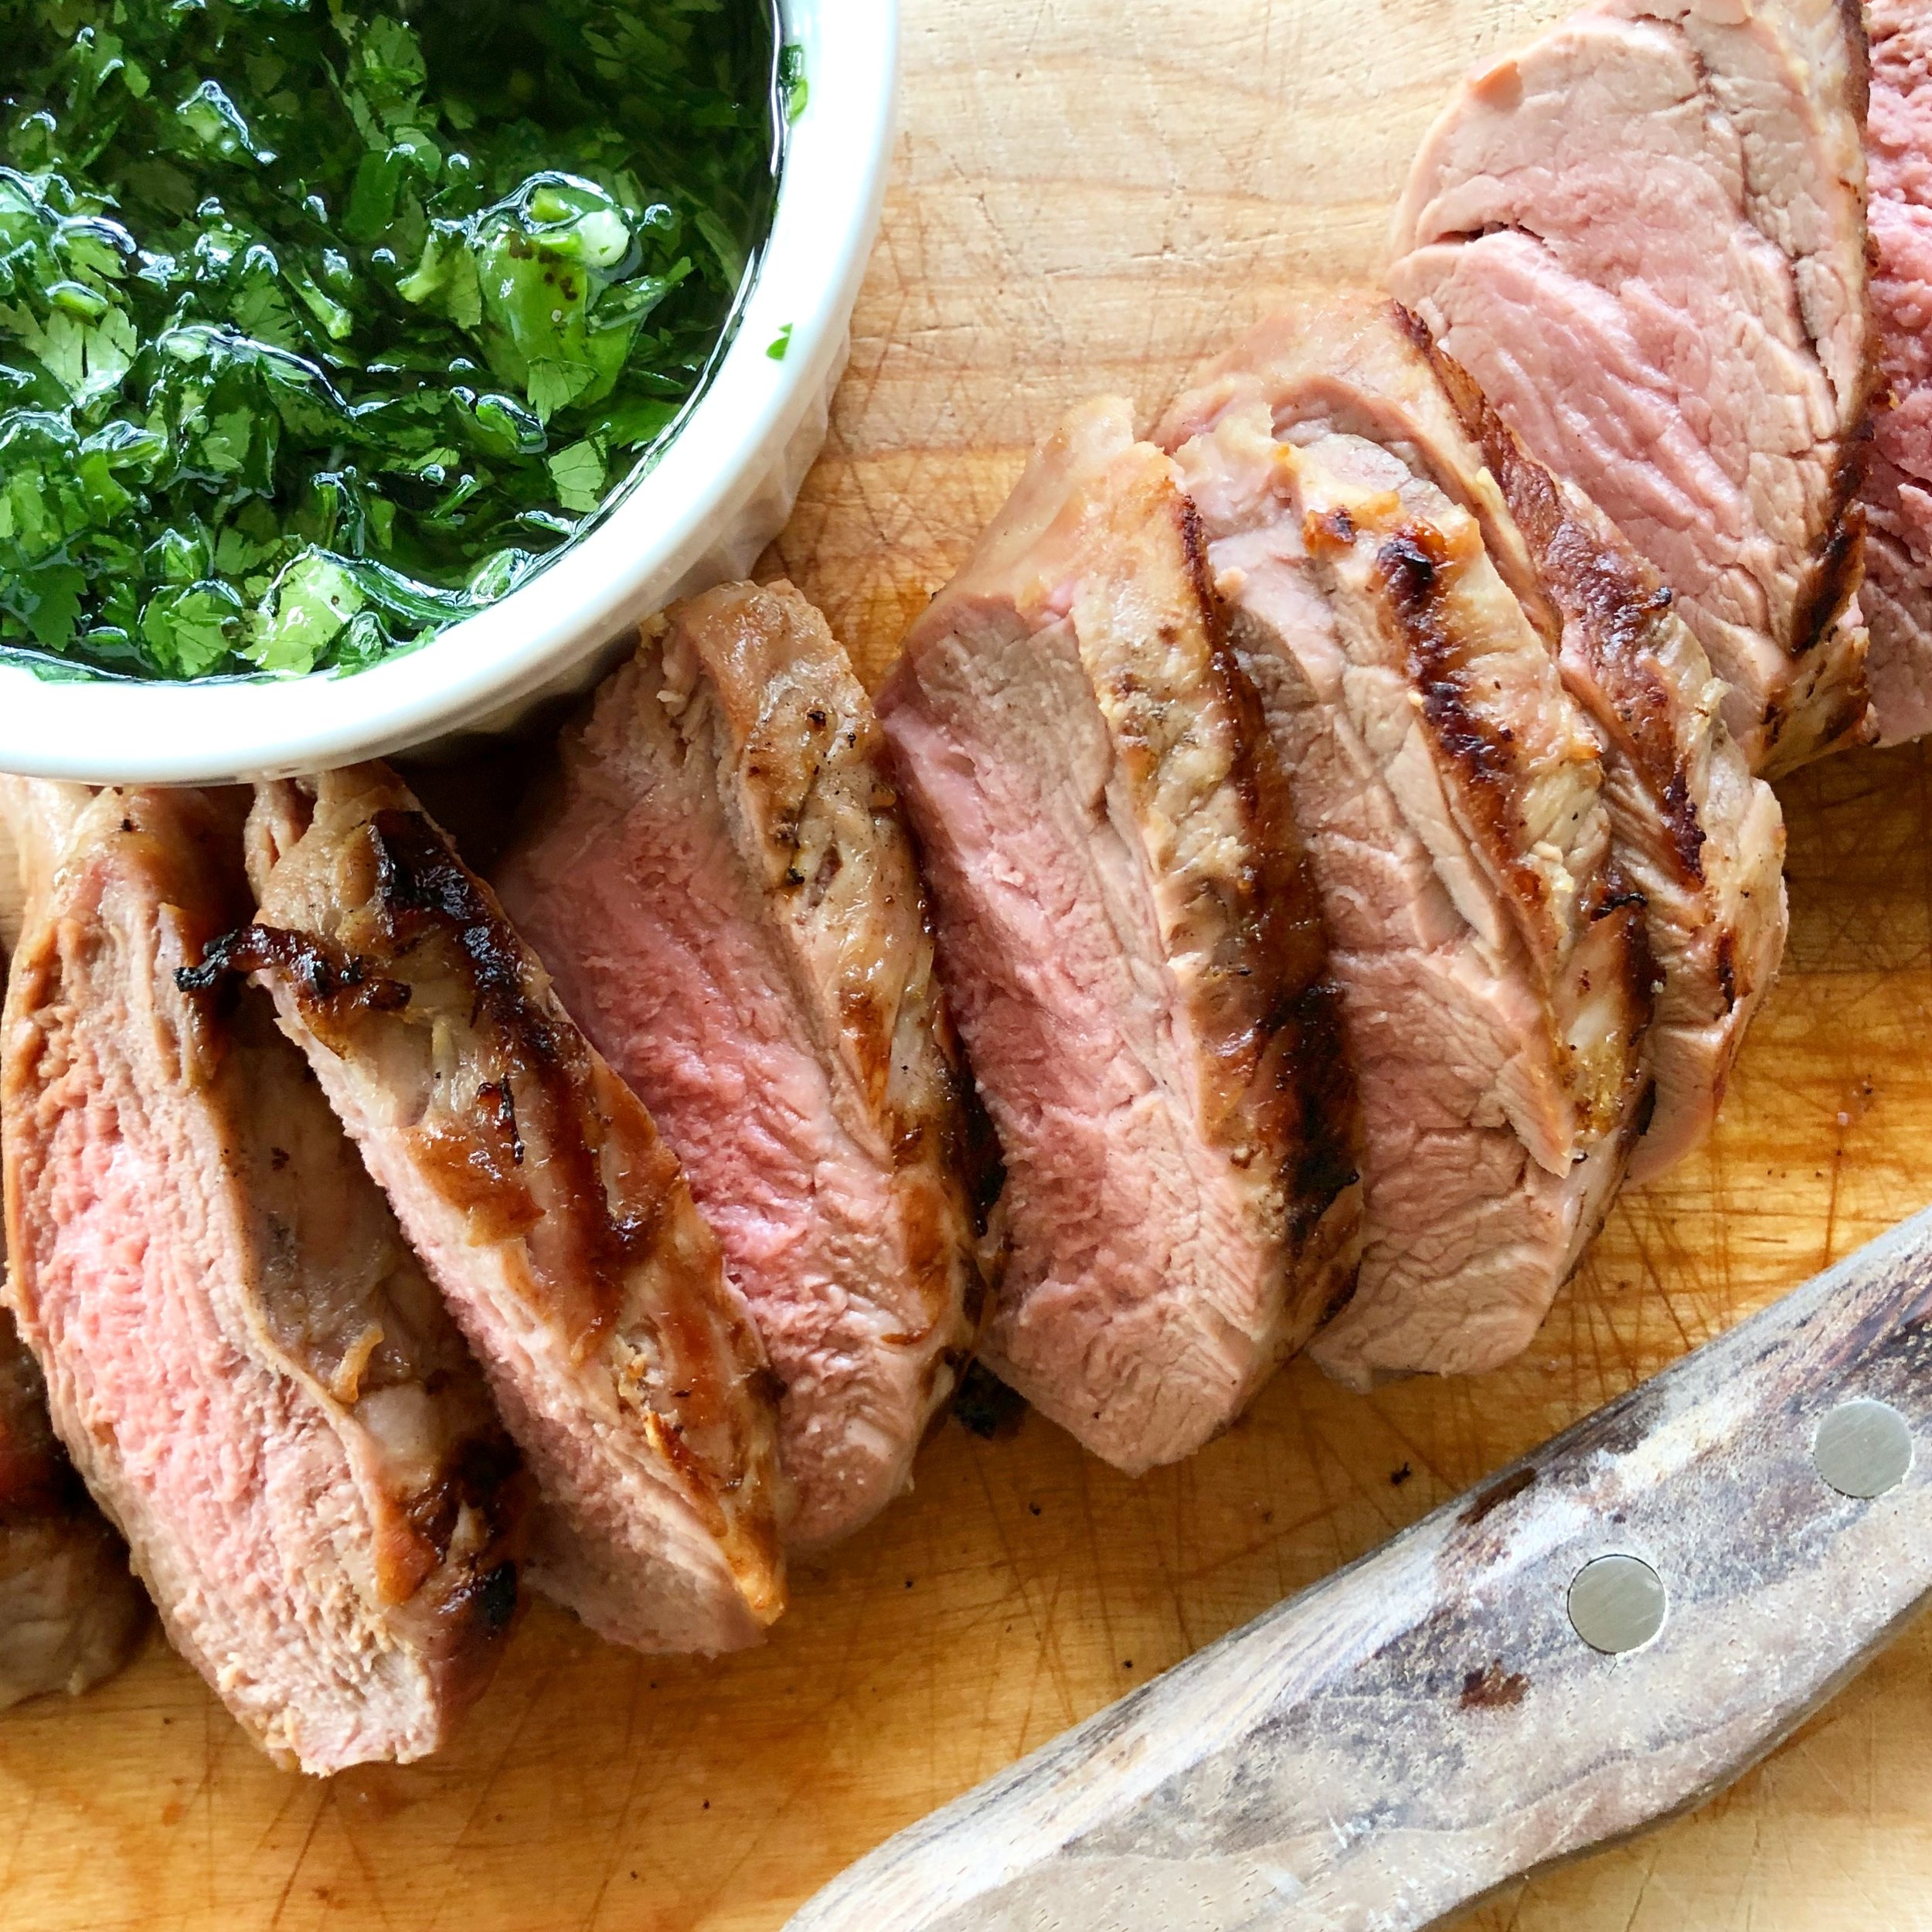 Grilled Pork Tenderloin with Chimichurri